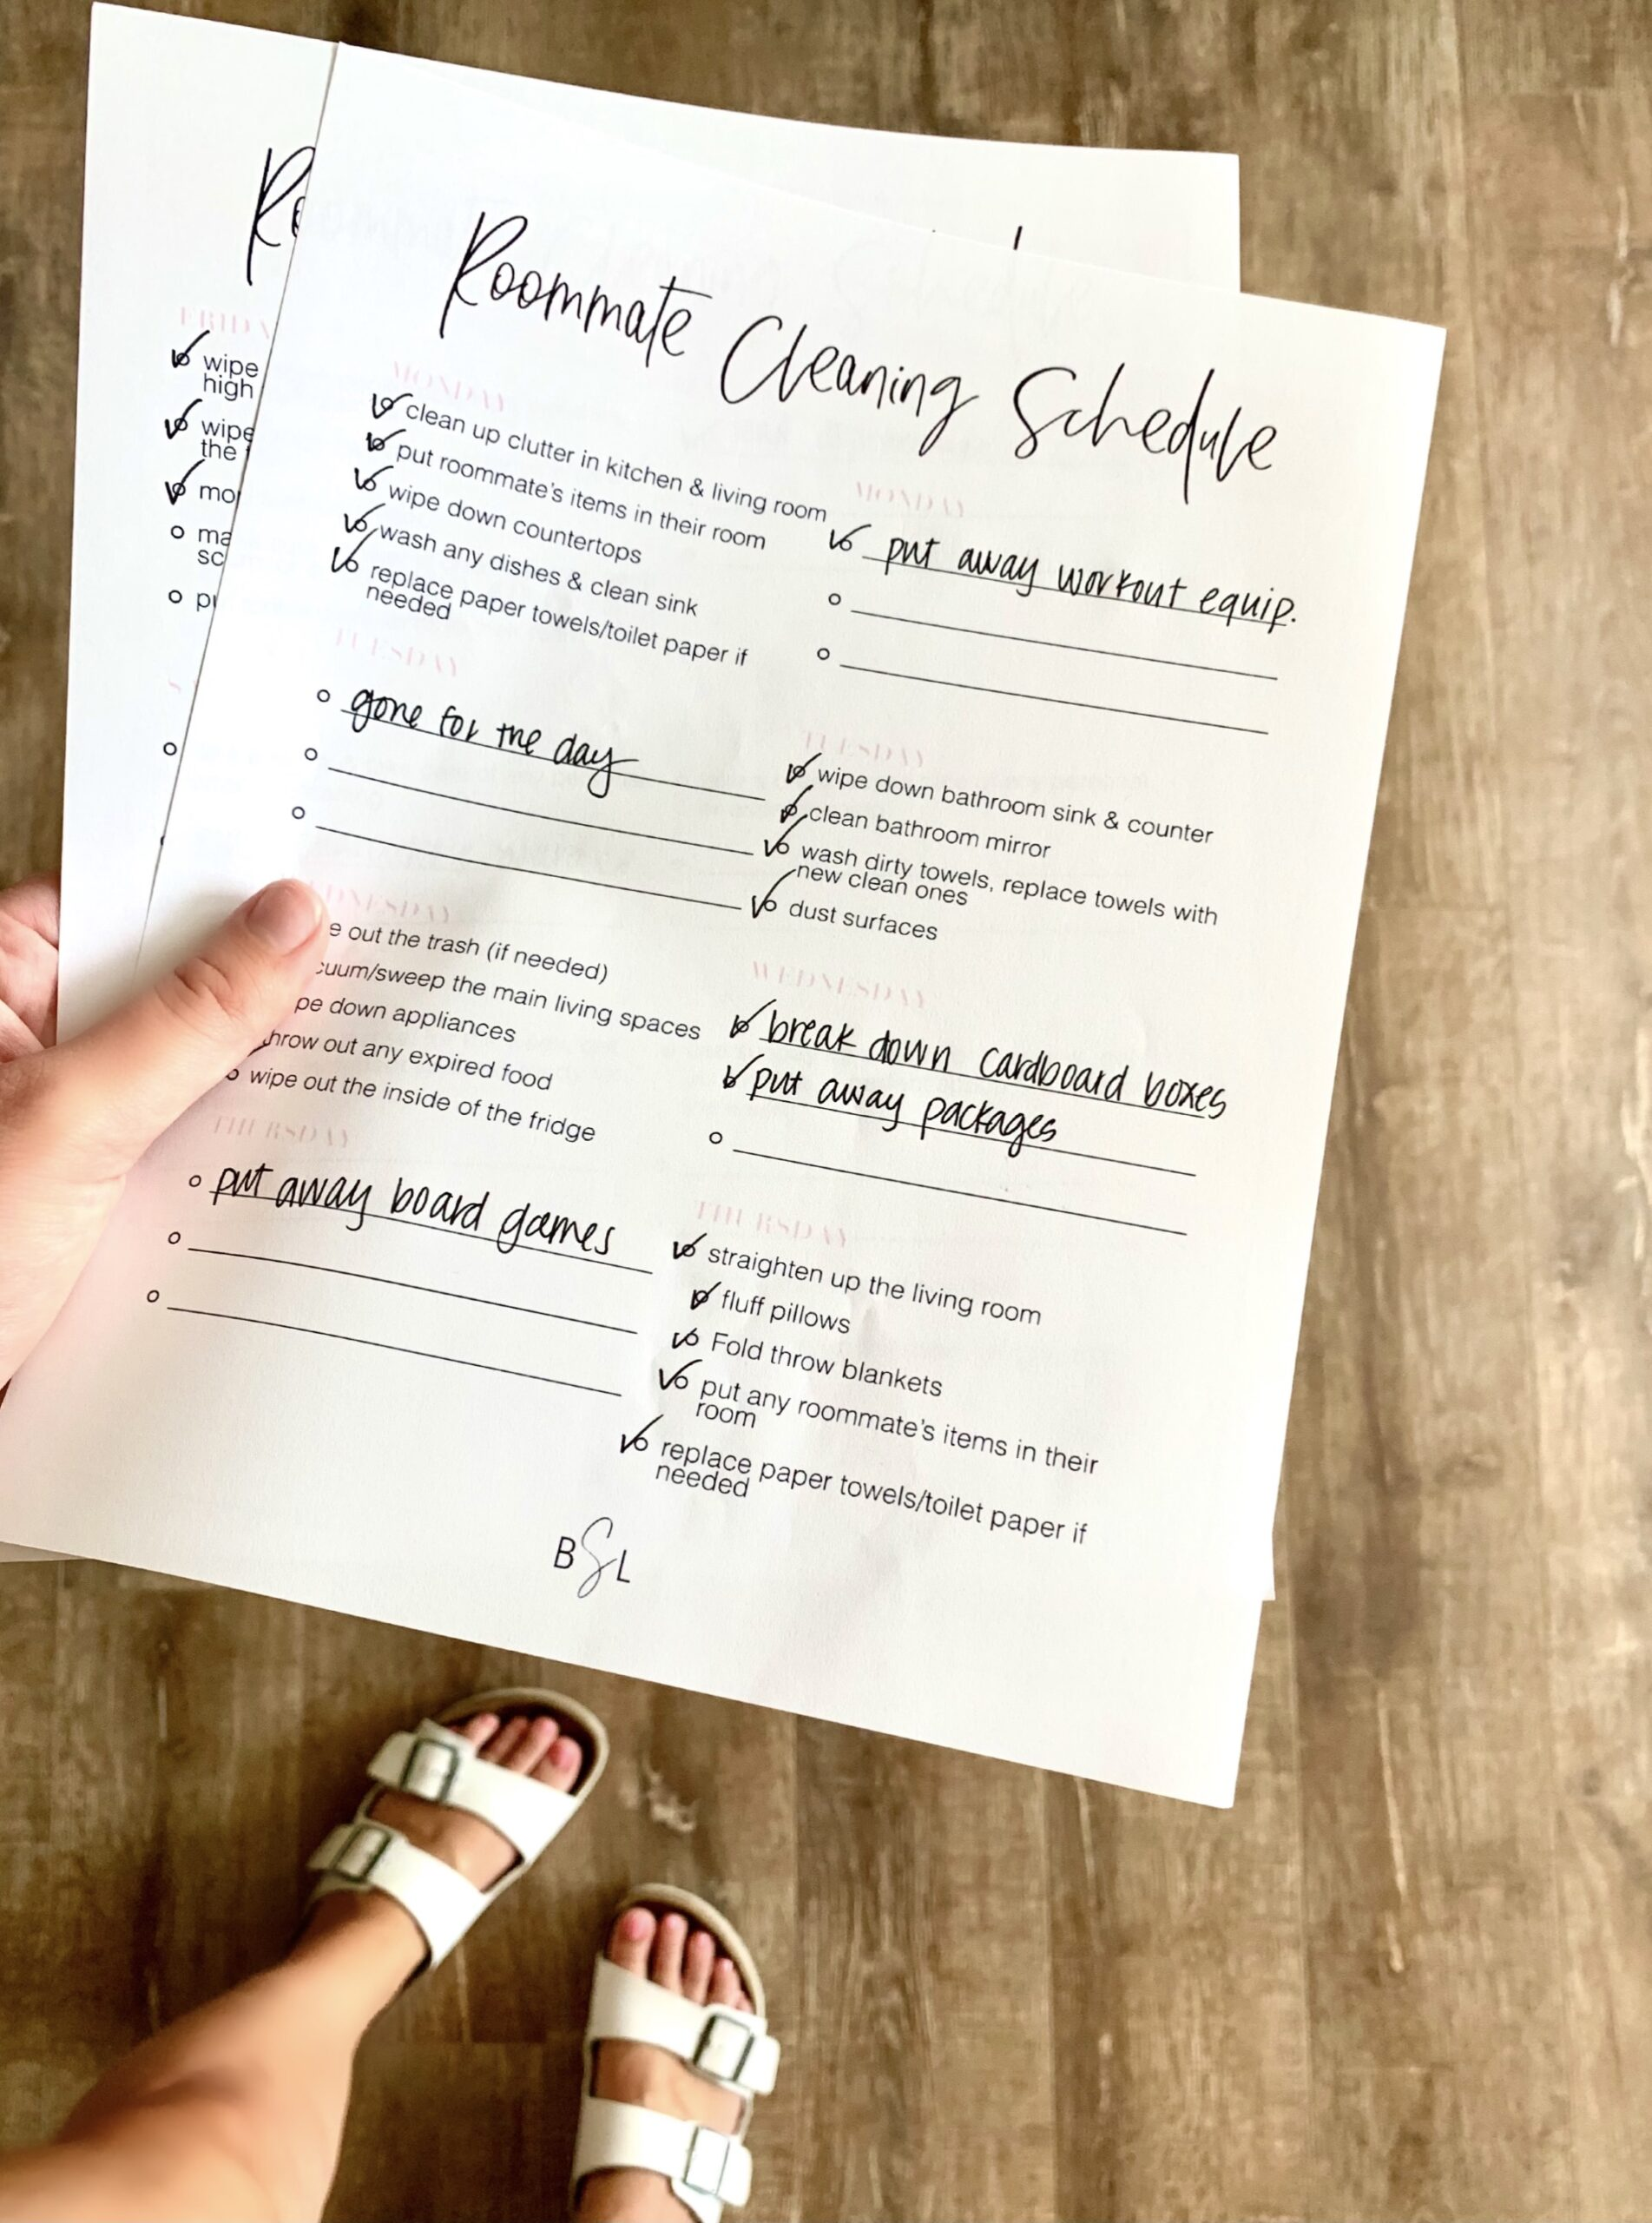 college chore chart template